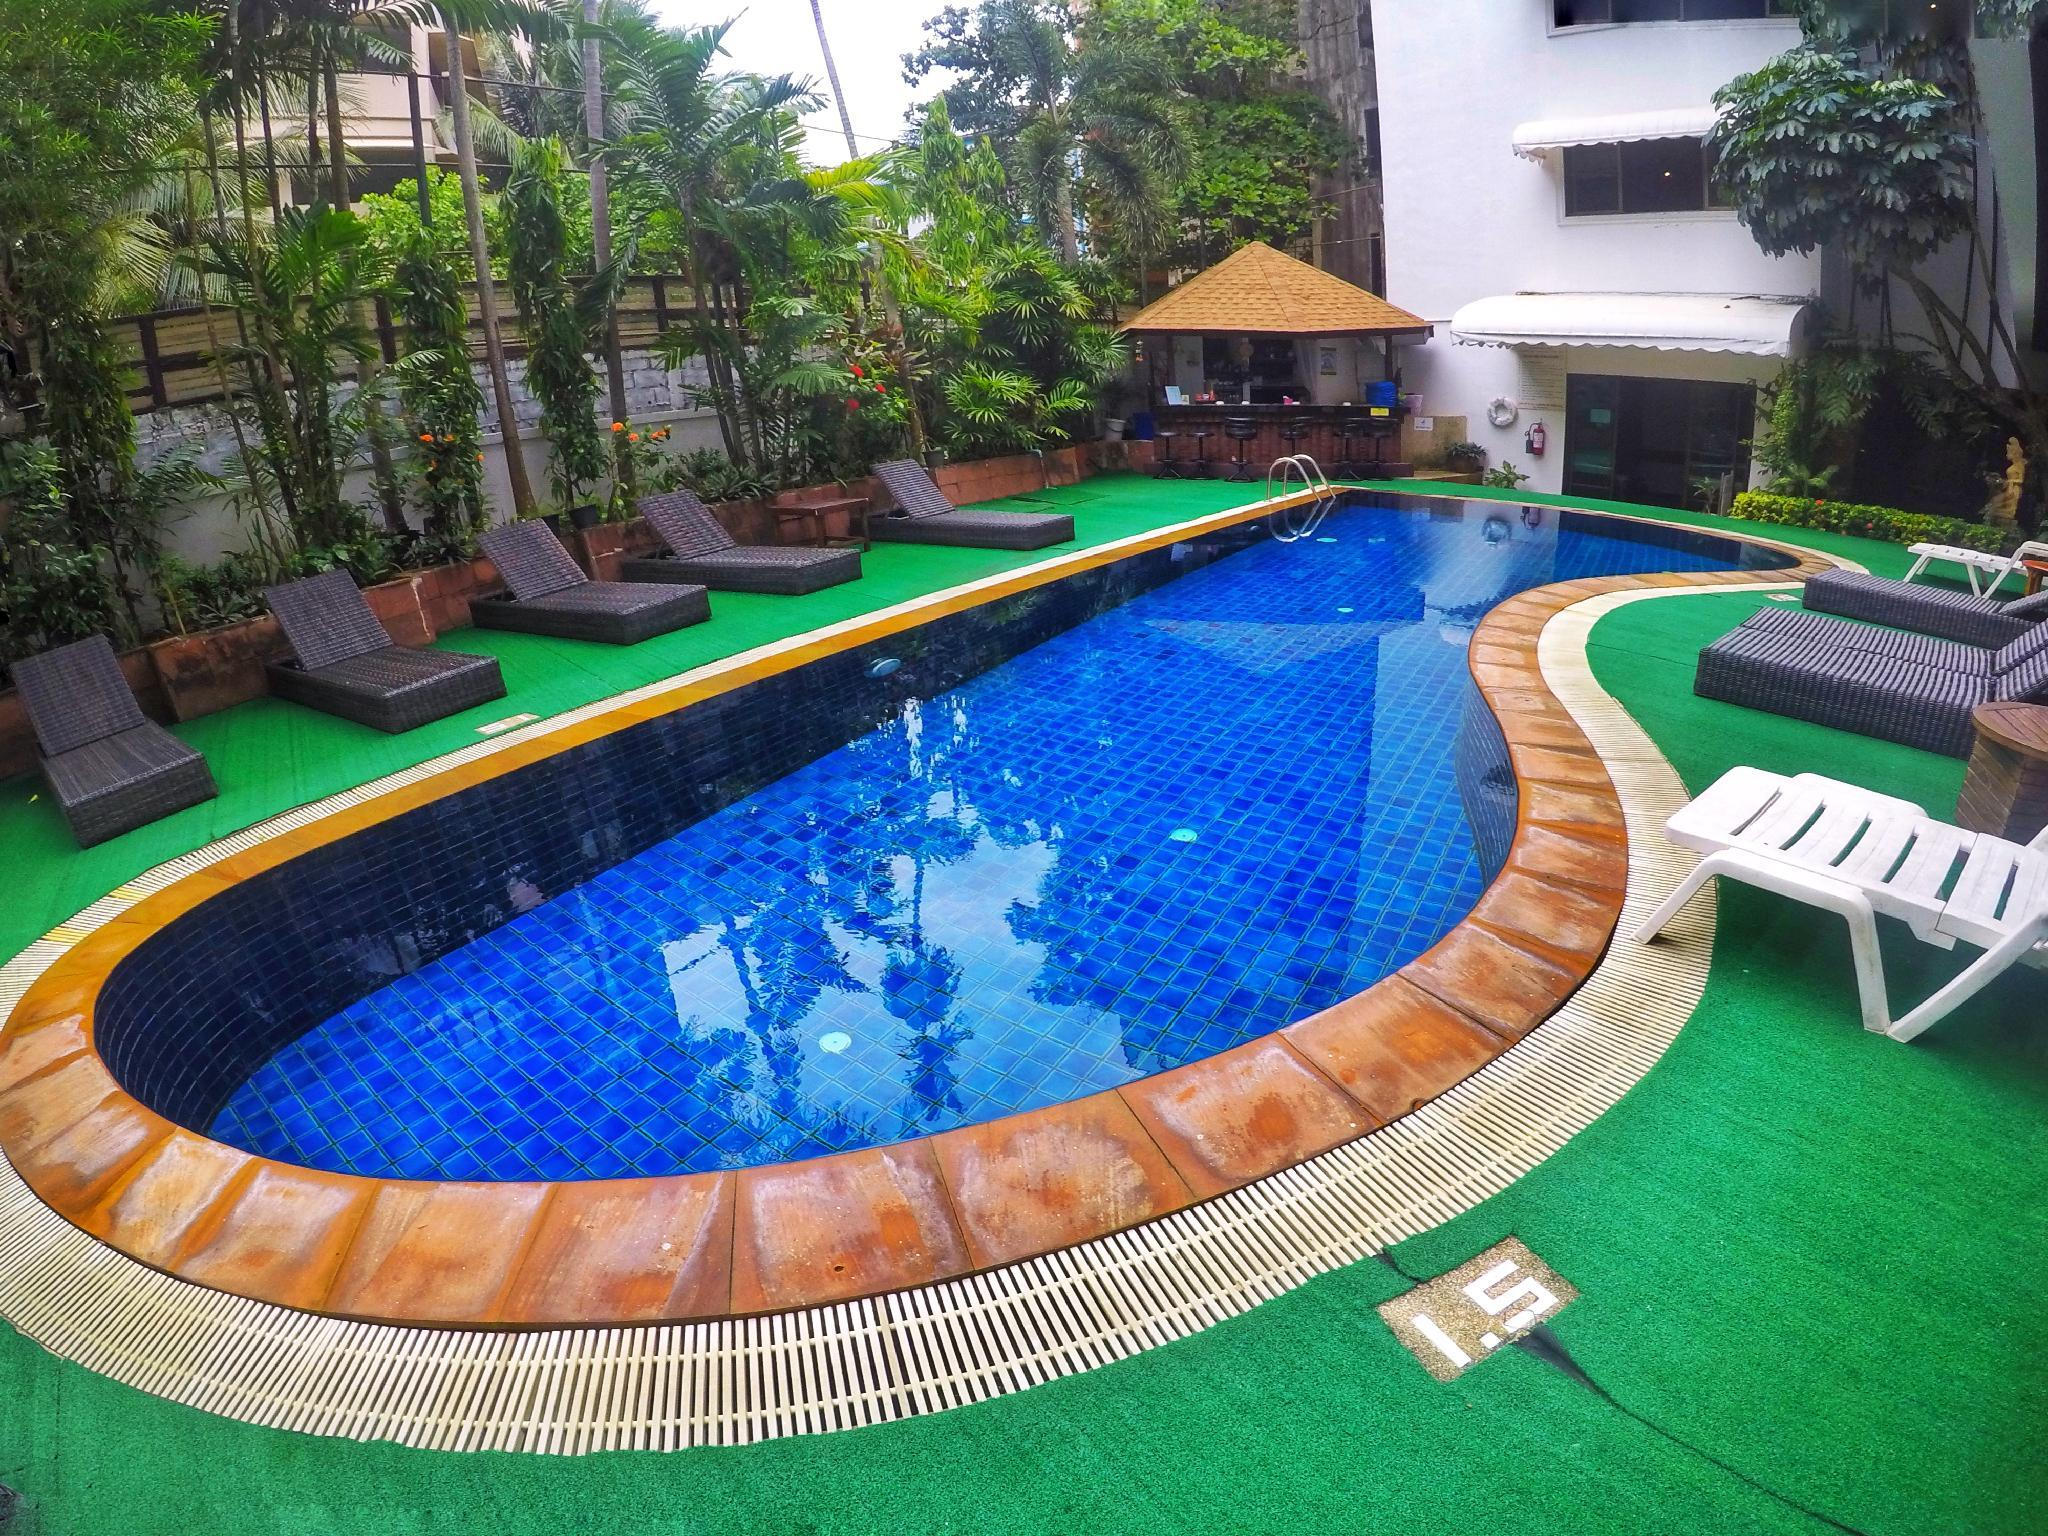 4 Bedroom Apartment Great Location Patong Beach 4b